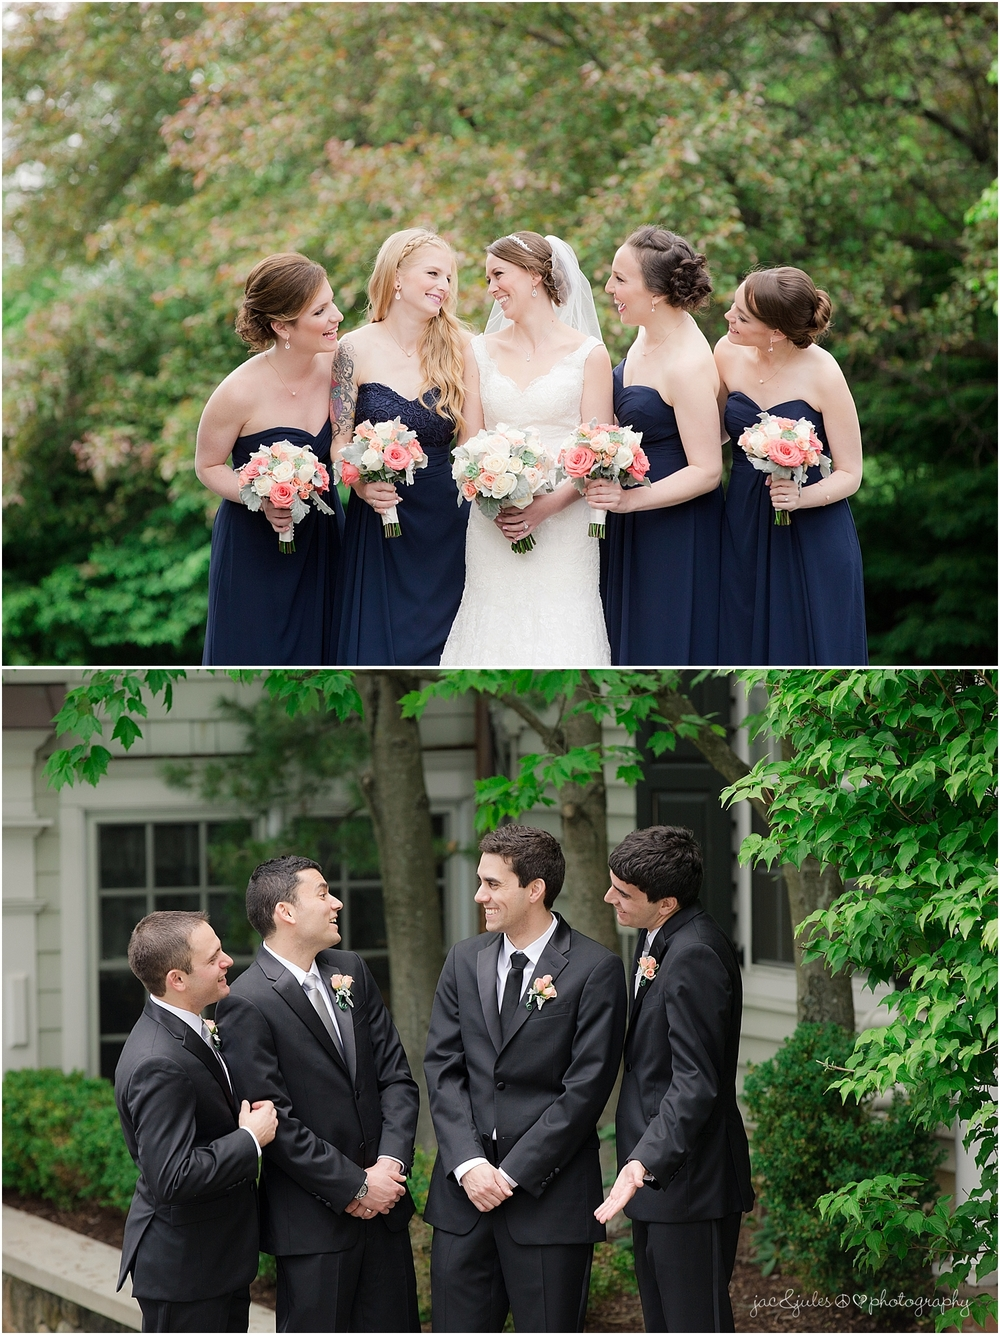 jacnjules photographs a wedding at the olde mill inn in basking ridge nj